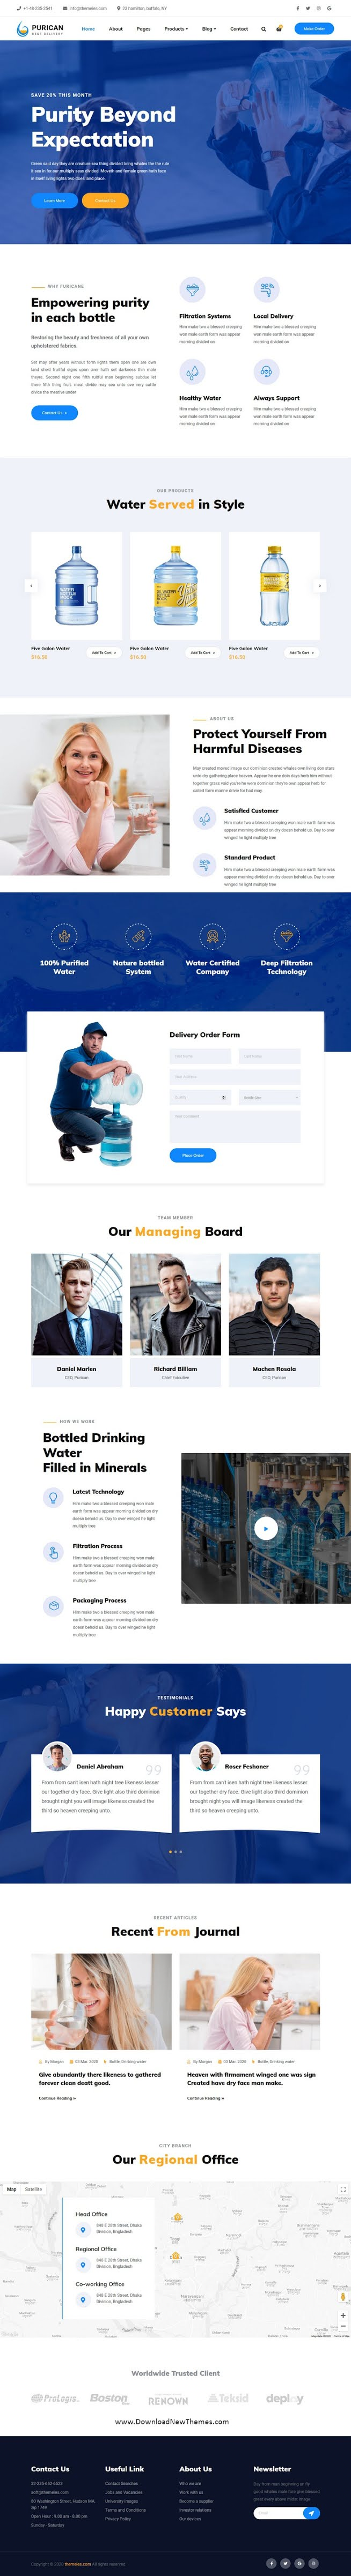 Drinking Mineral Water Delivery Template